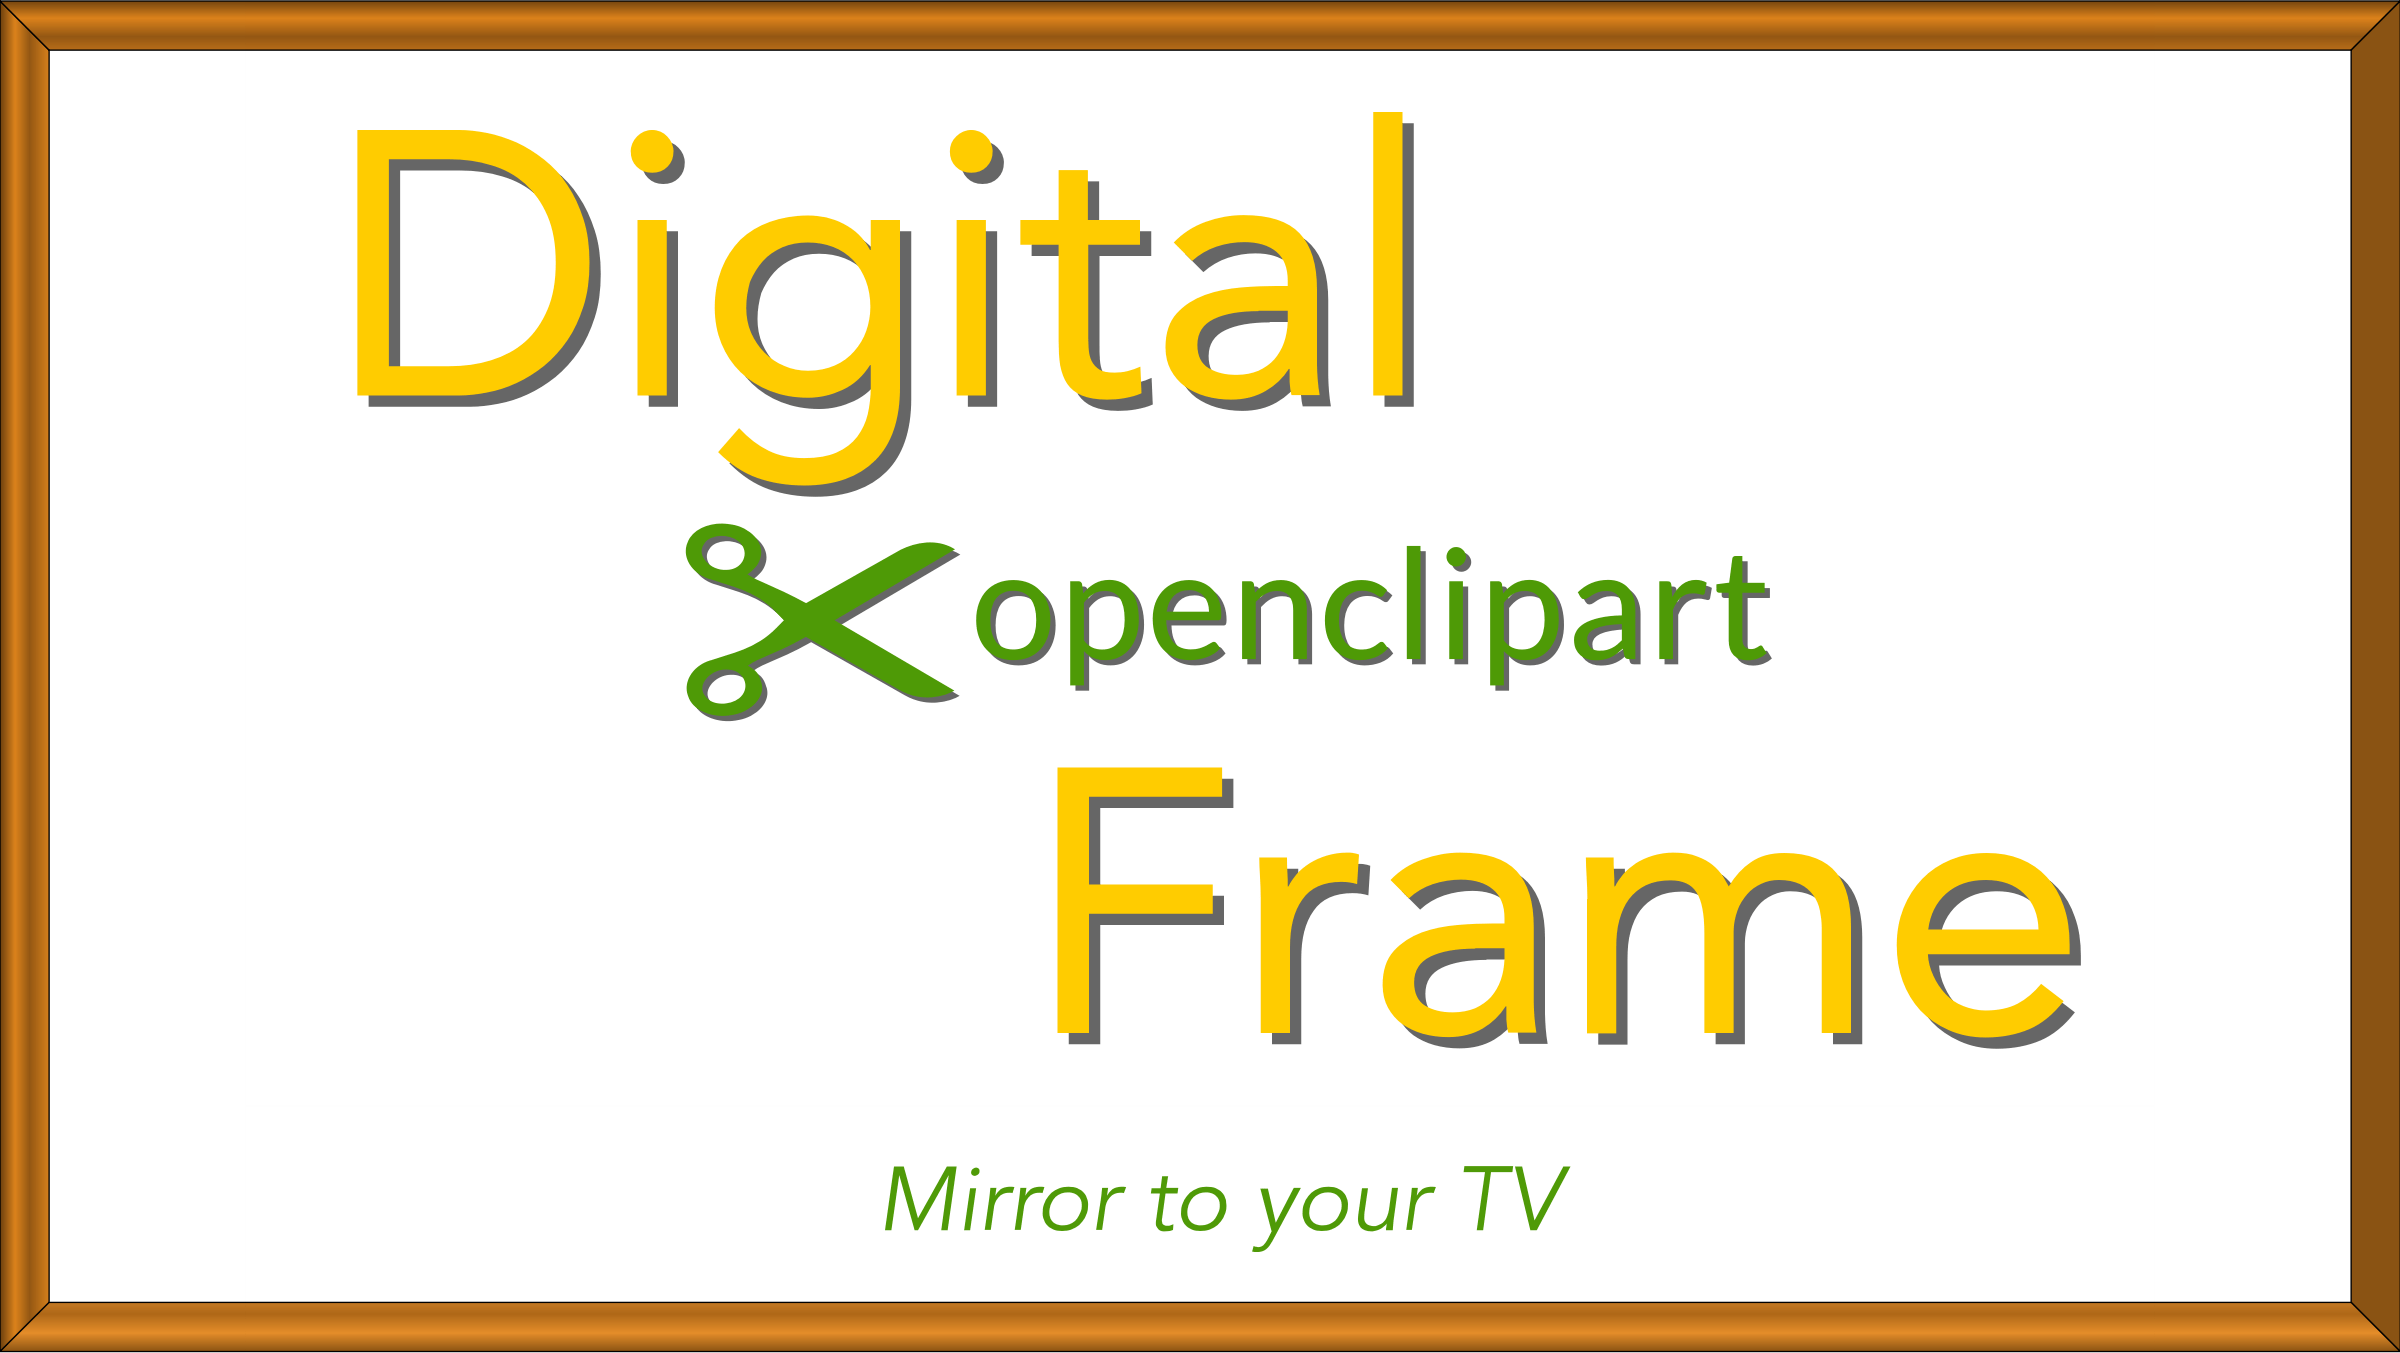 Clipart Digital OpenClipArt Frame